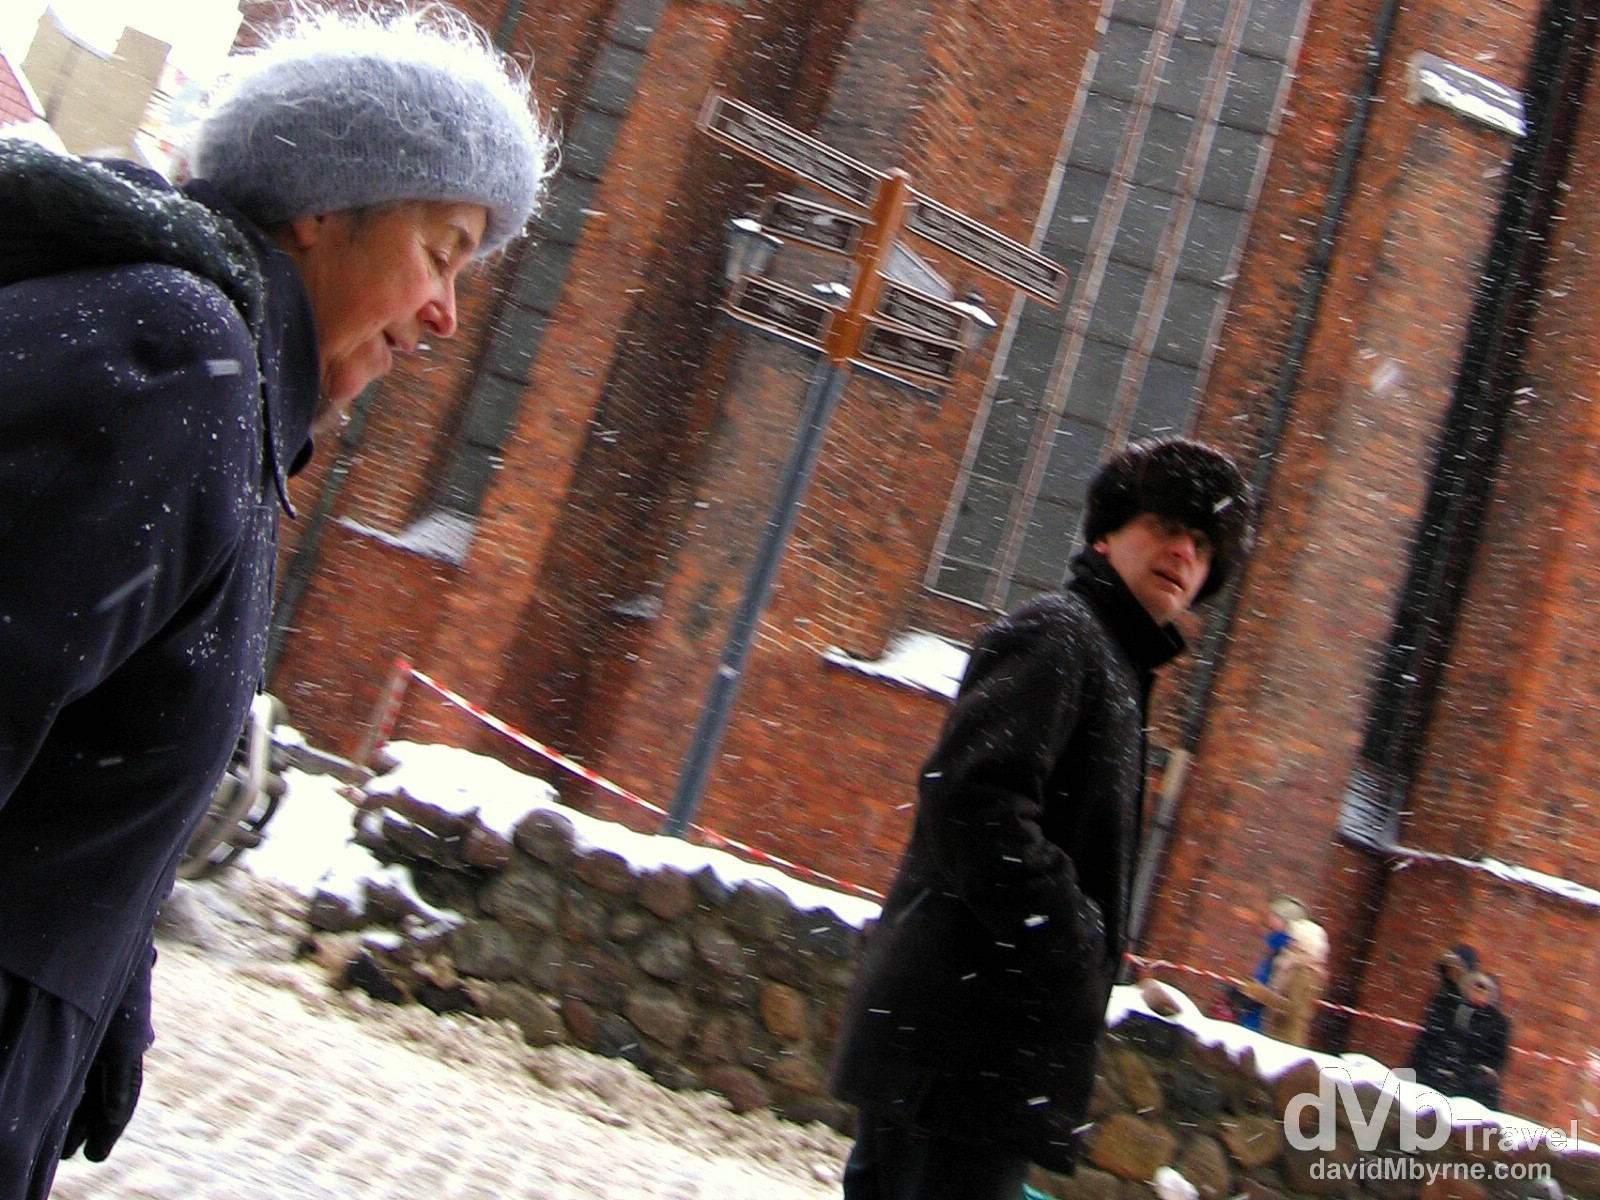 Battling a snow blizzard in Old Town, Riga, Latvia. March 3, 2006.